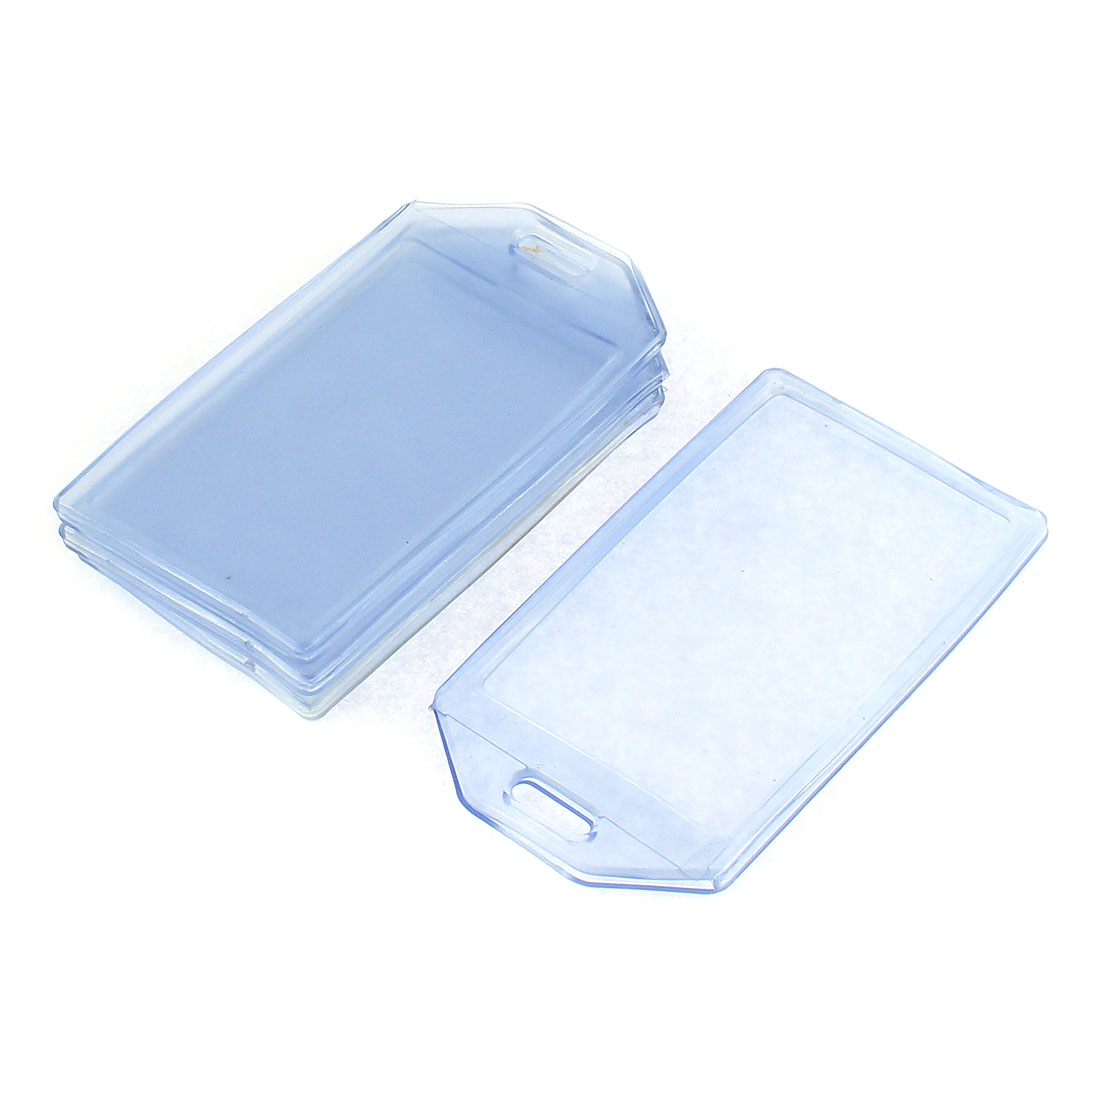 Vertical Clear Plastic ID Badge Card Holder Pocket Pouch 4pcs